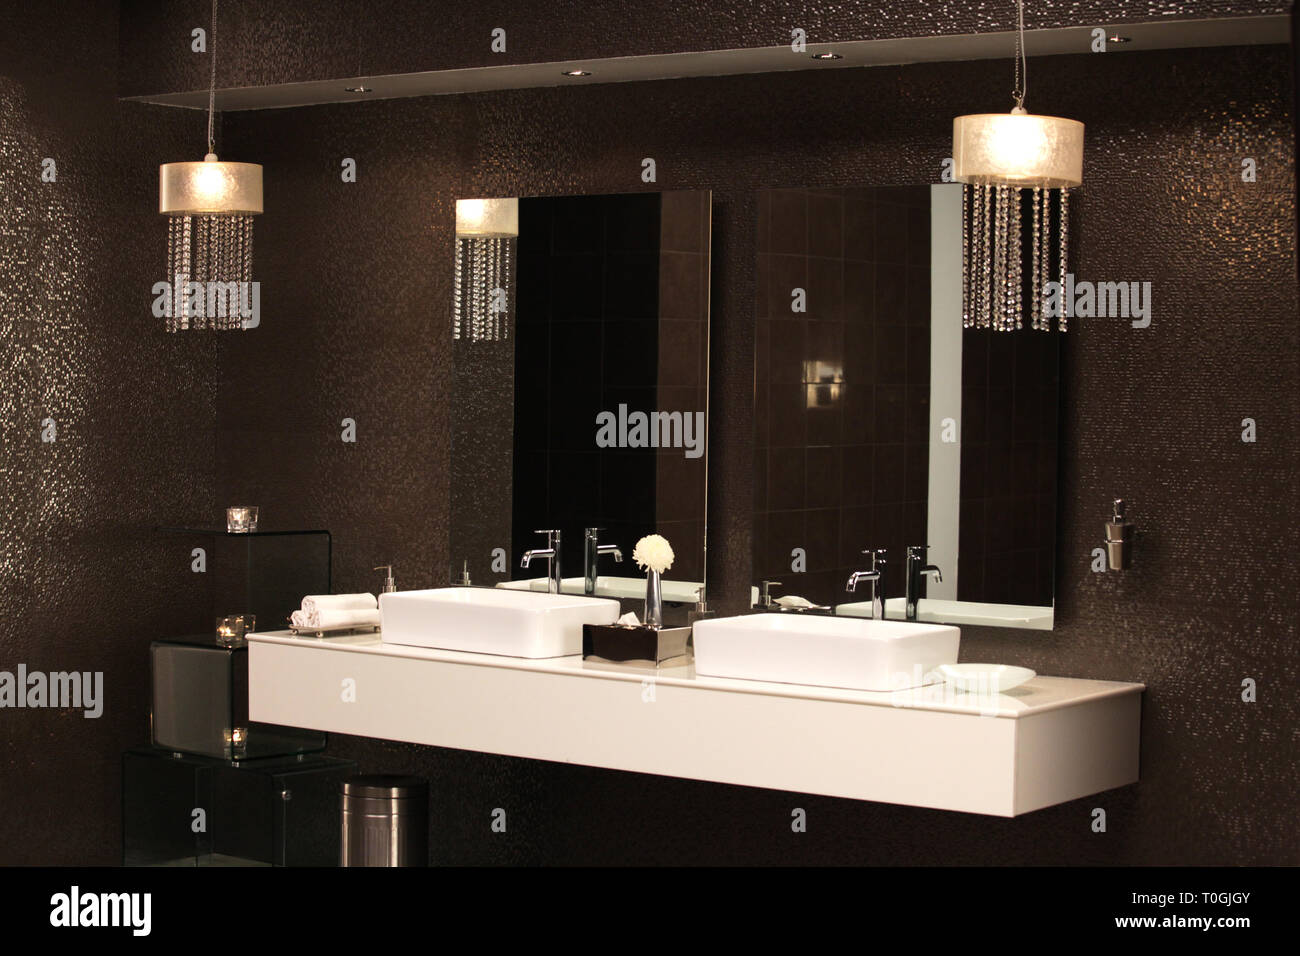 A White Bathroom Counter Stand Out From Luxury Glod Glitter Wall In Bathroom Setup In Studio Stock Photo Alamy